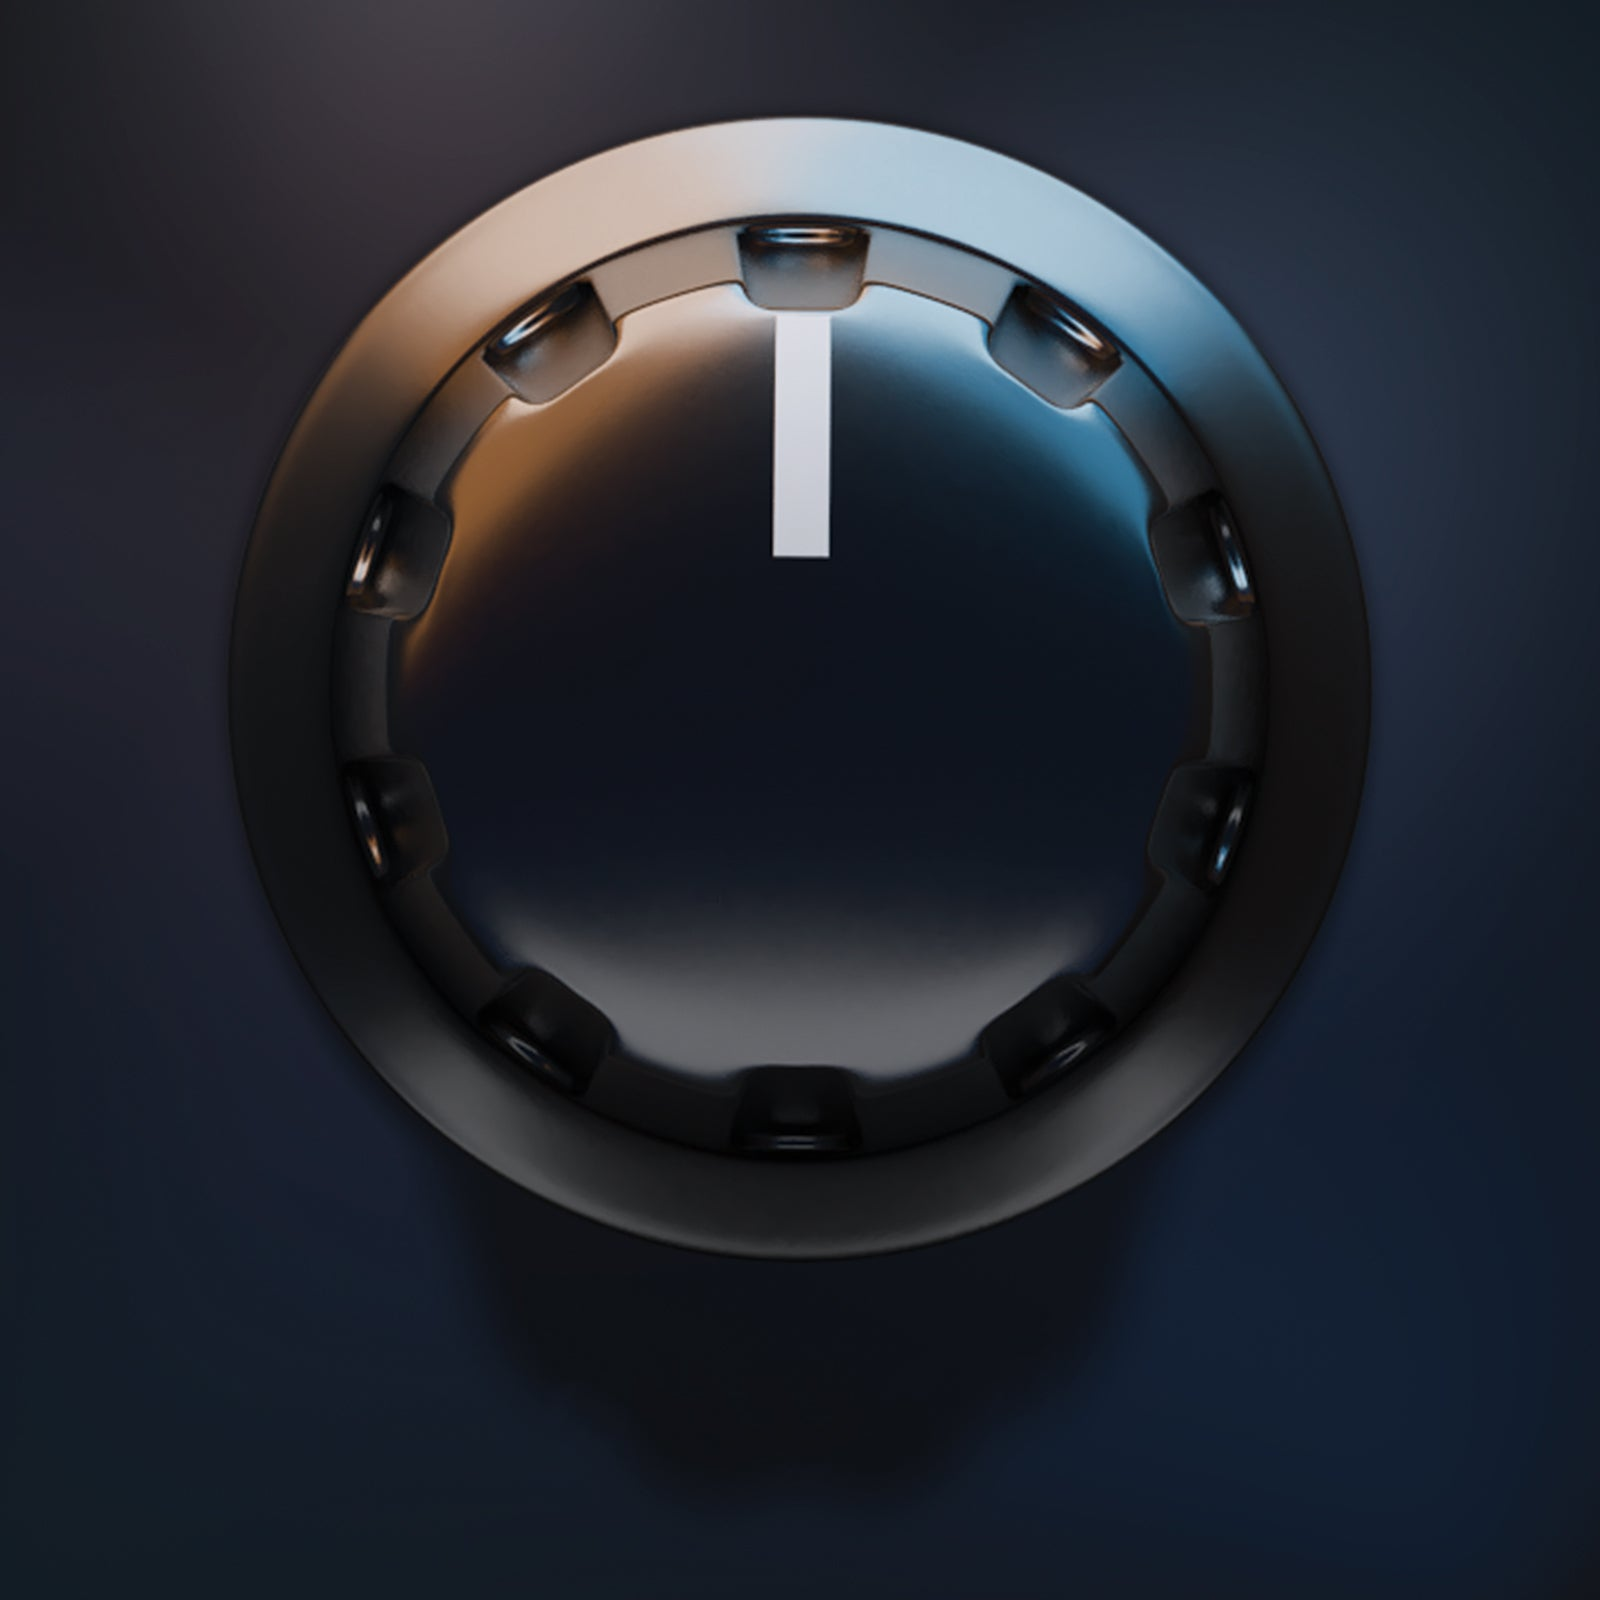 Dark dial audio ribbed knob gui